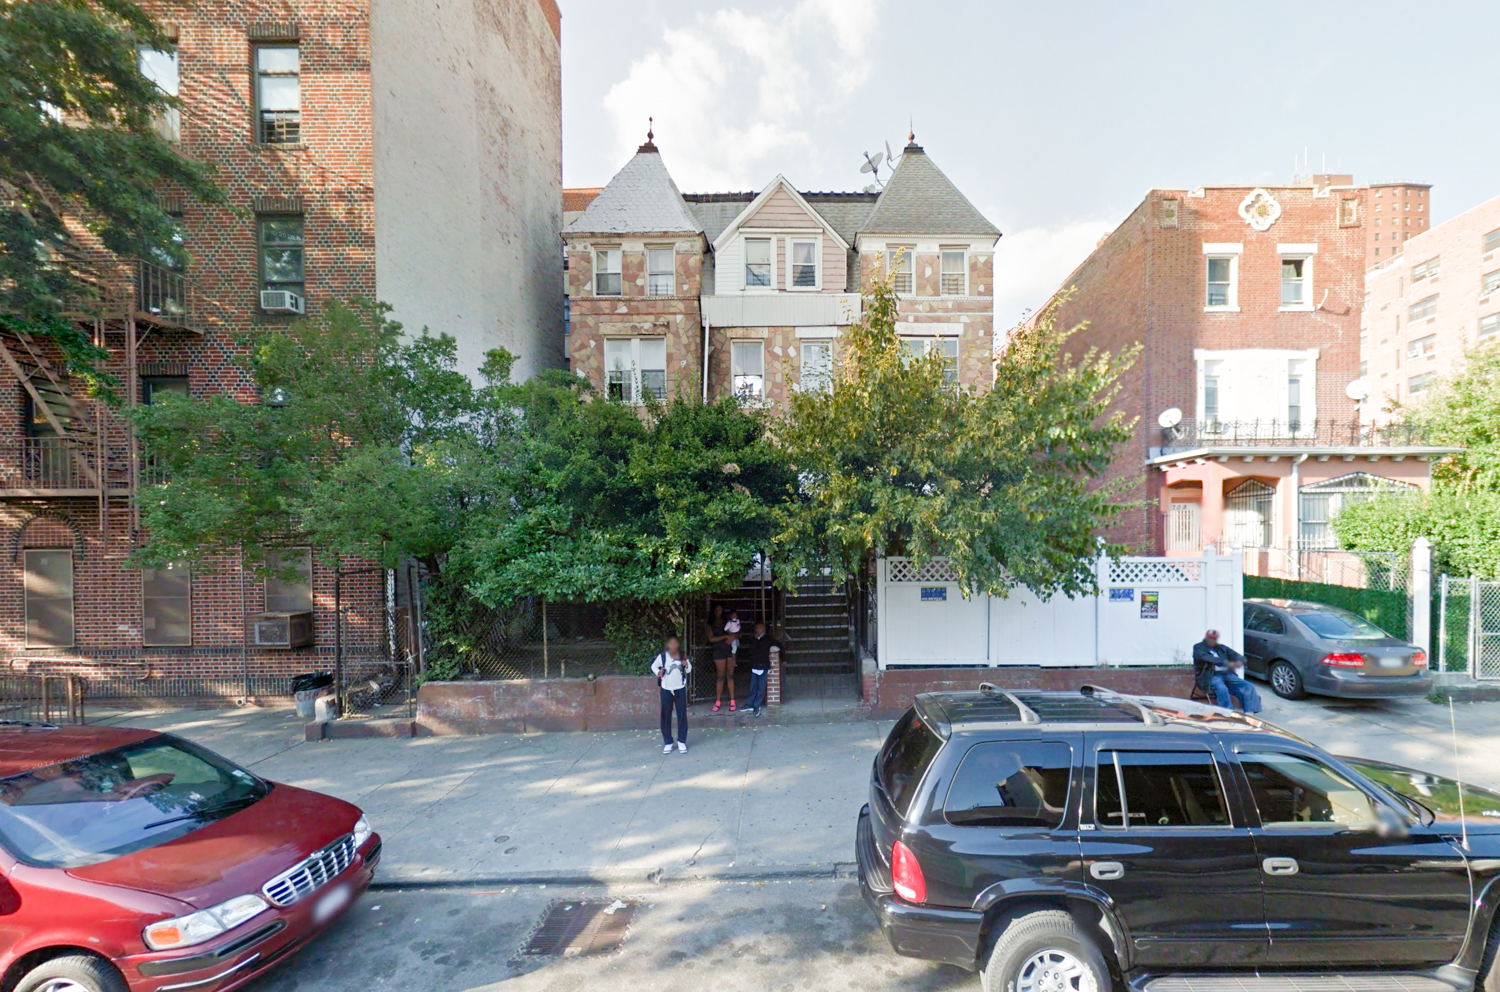 707 Willoughby Avenue, via Google Maps